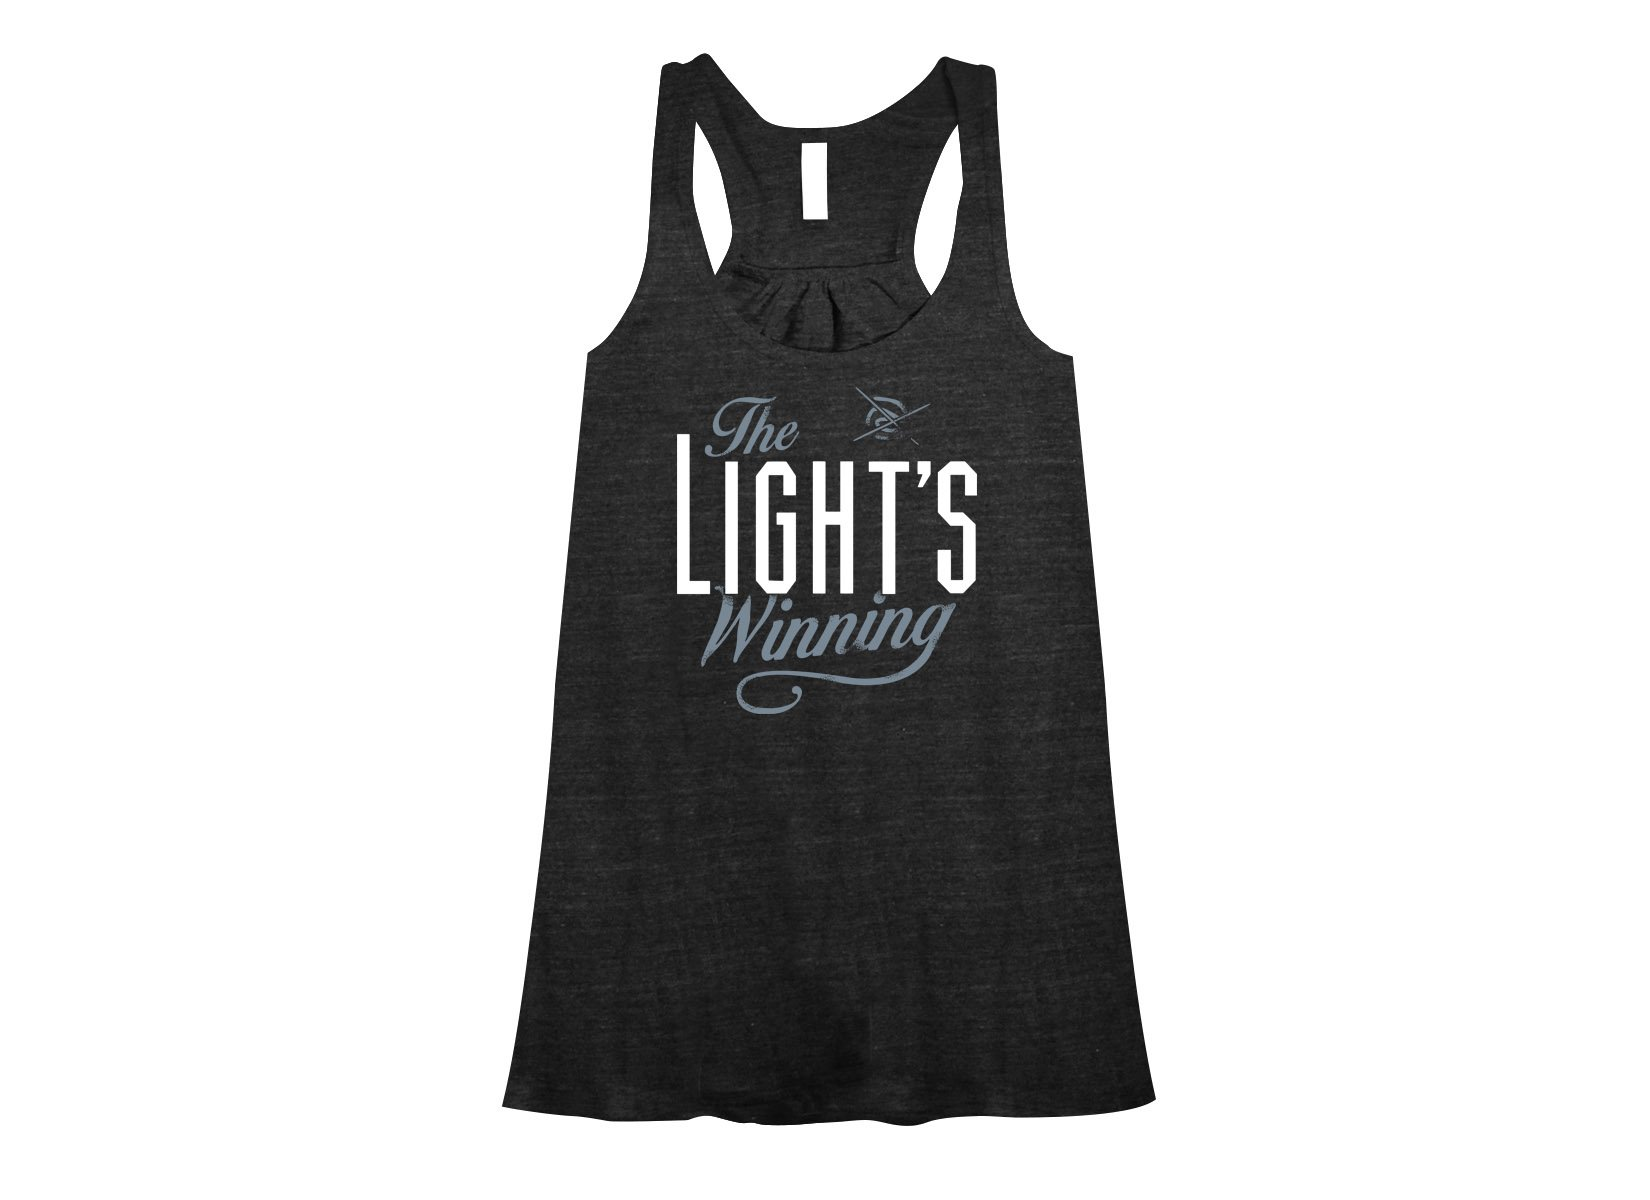 The Light's Winning on Womens Tanks T-Shirt